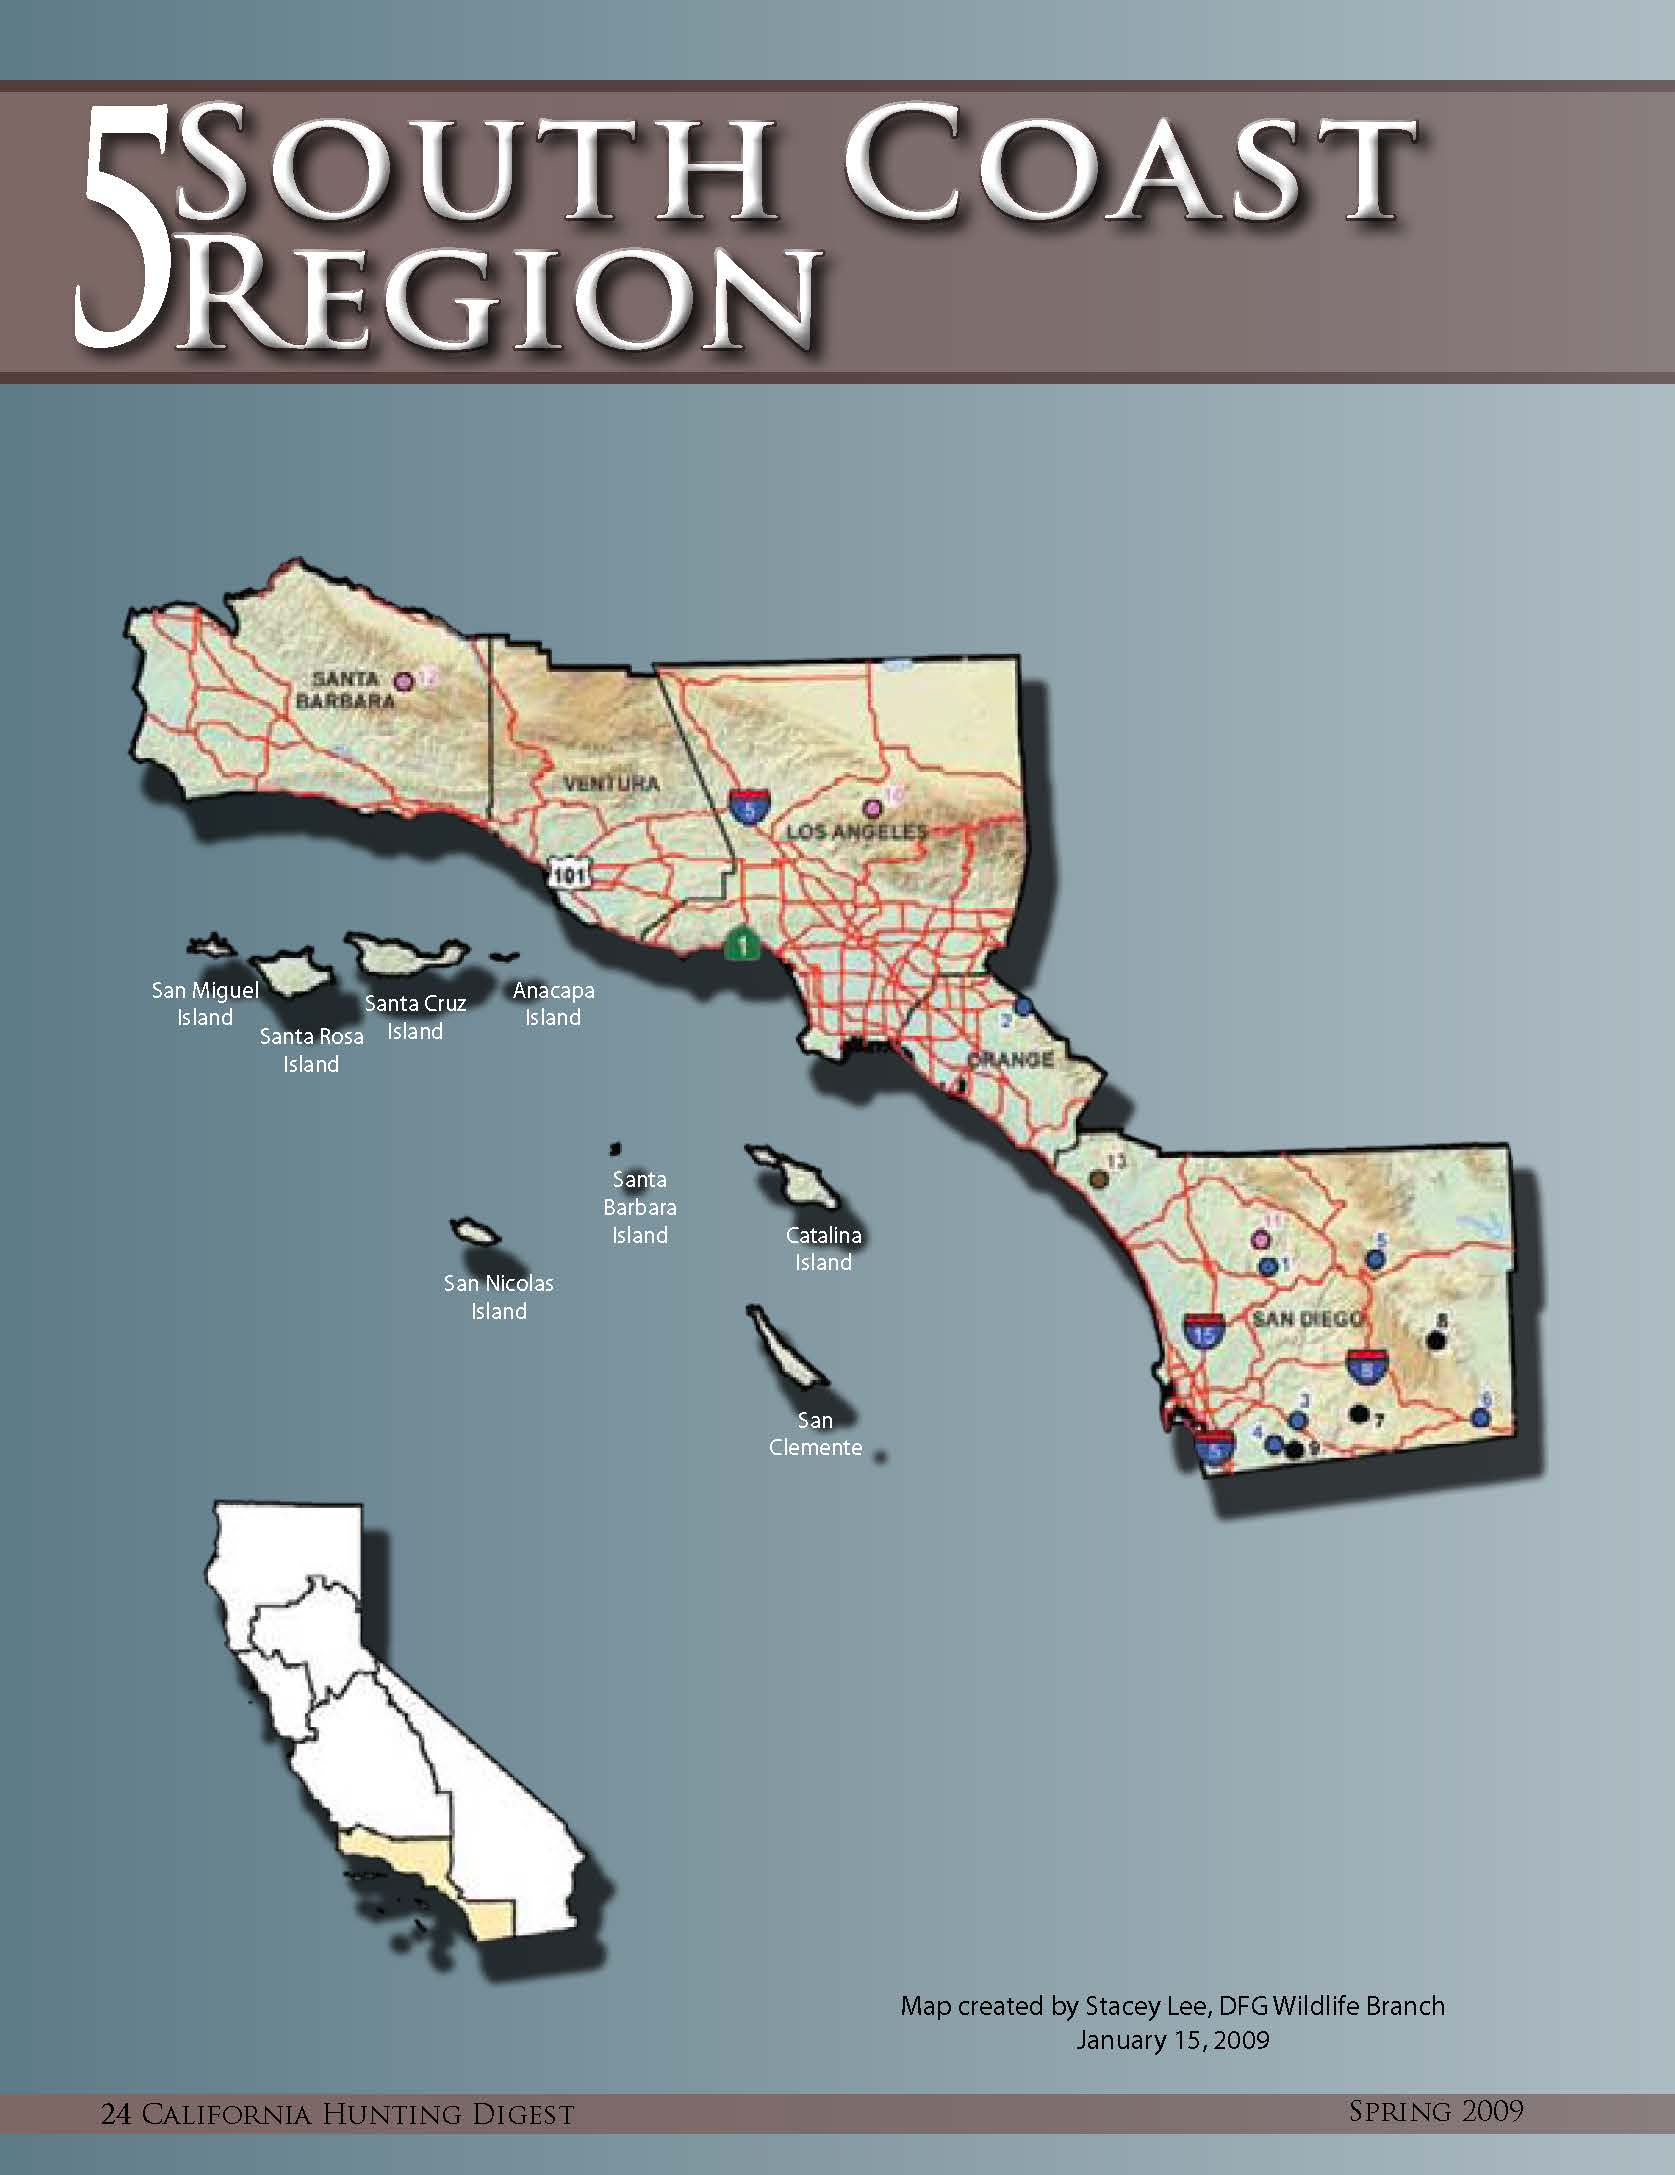 Bureau Of Land Management Areas Weve Moved To WwwLegalLabrador - Los angeles ventura map